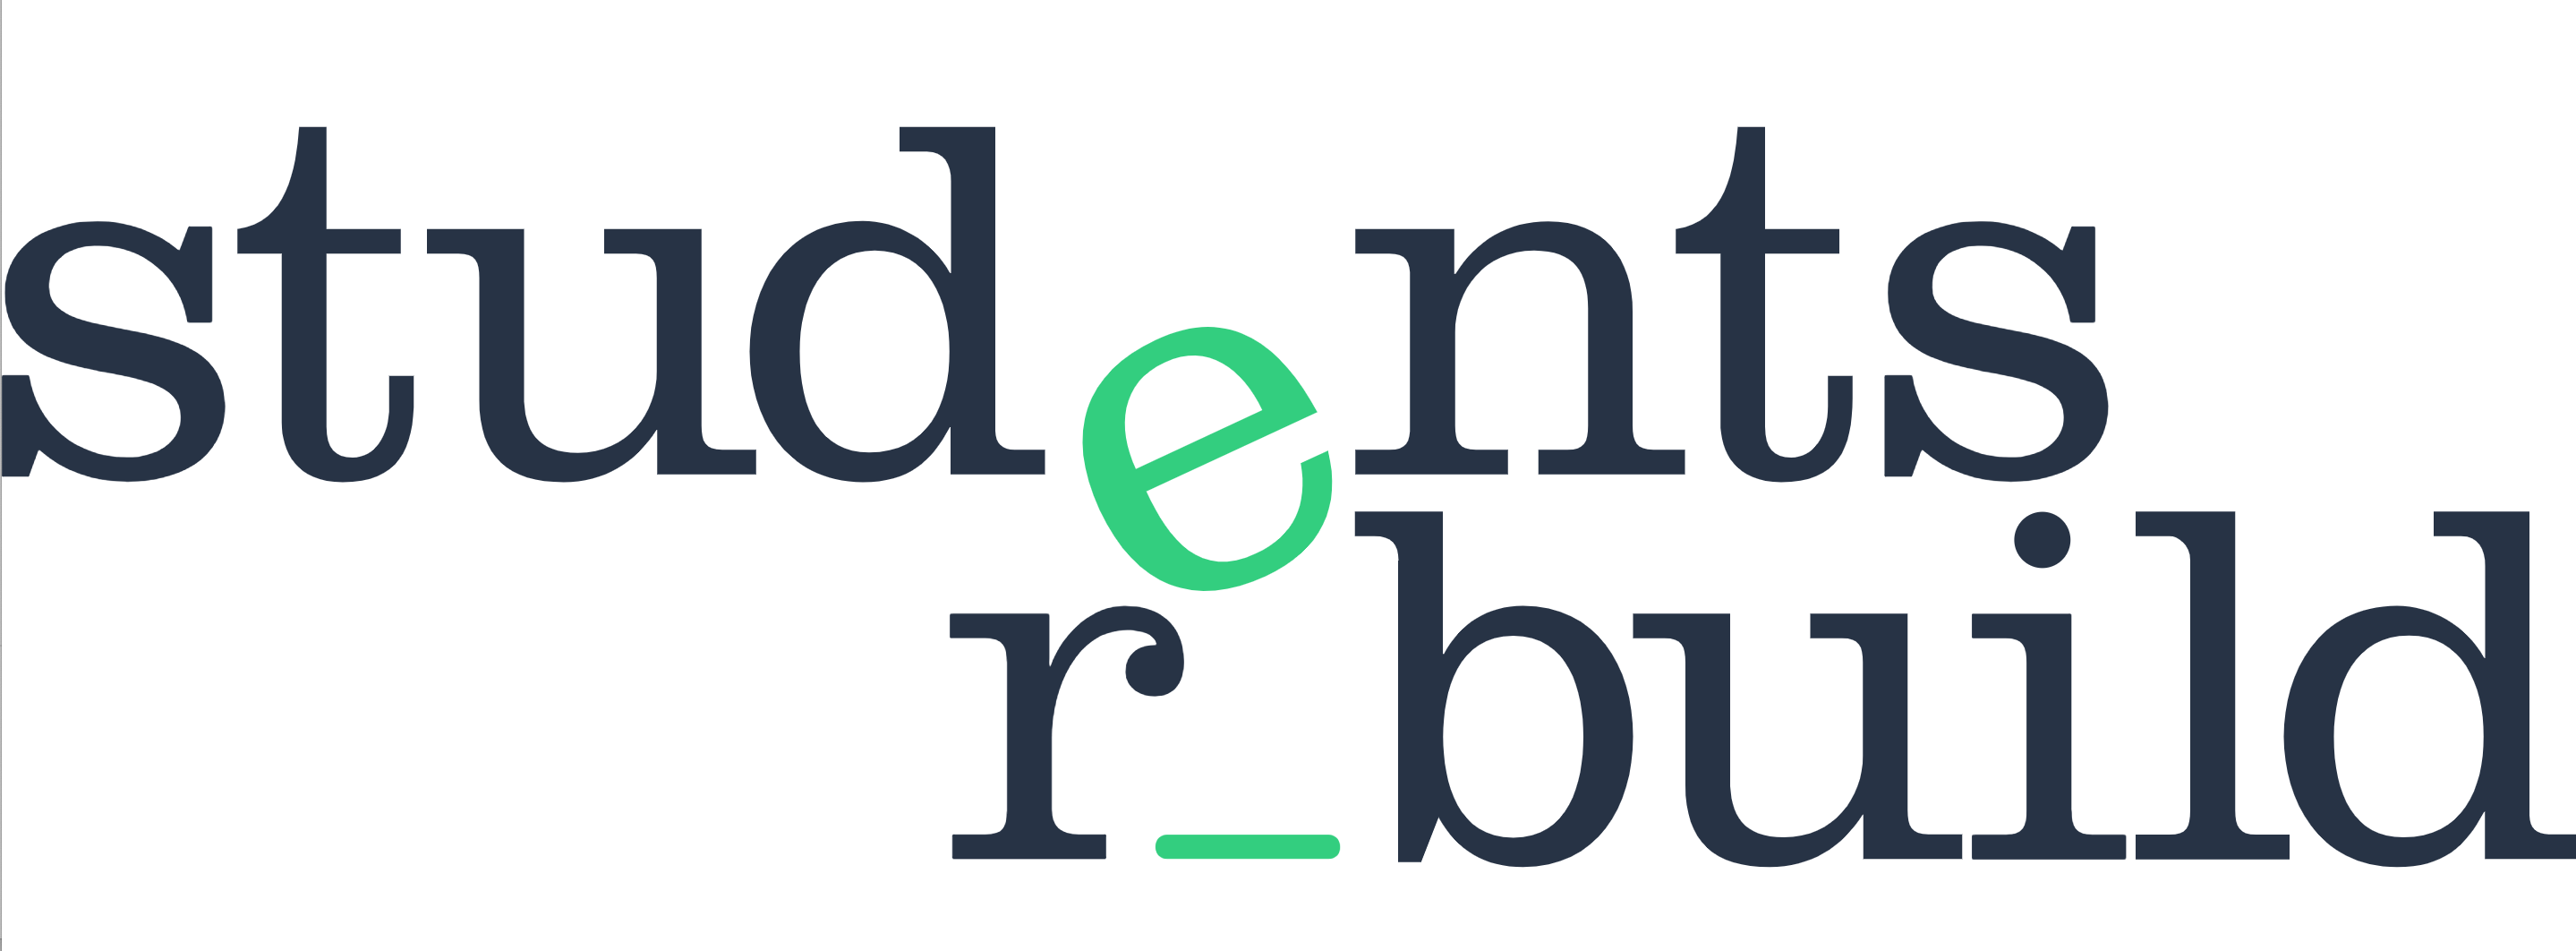 Students Rebuild logo